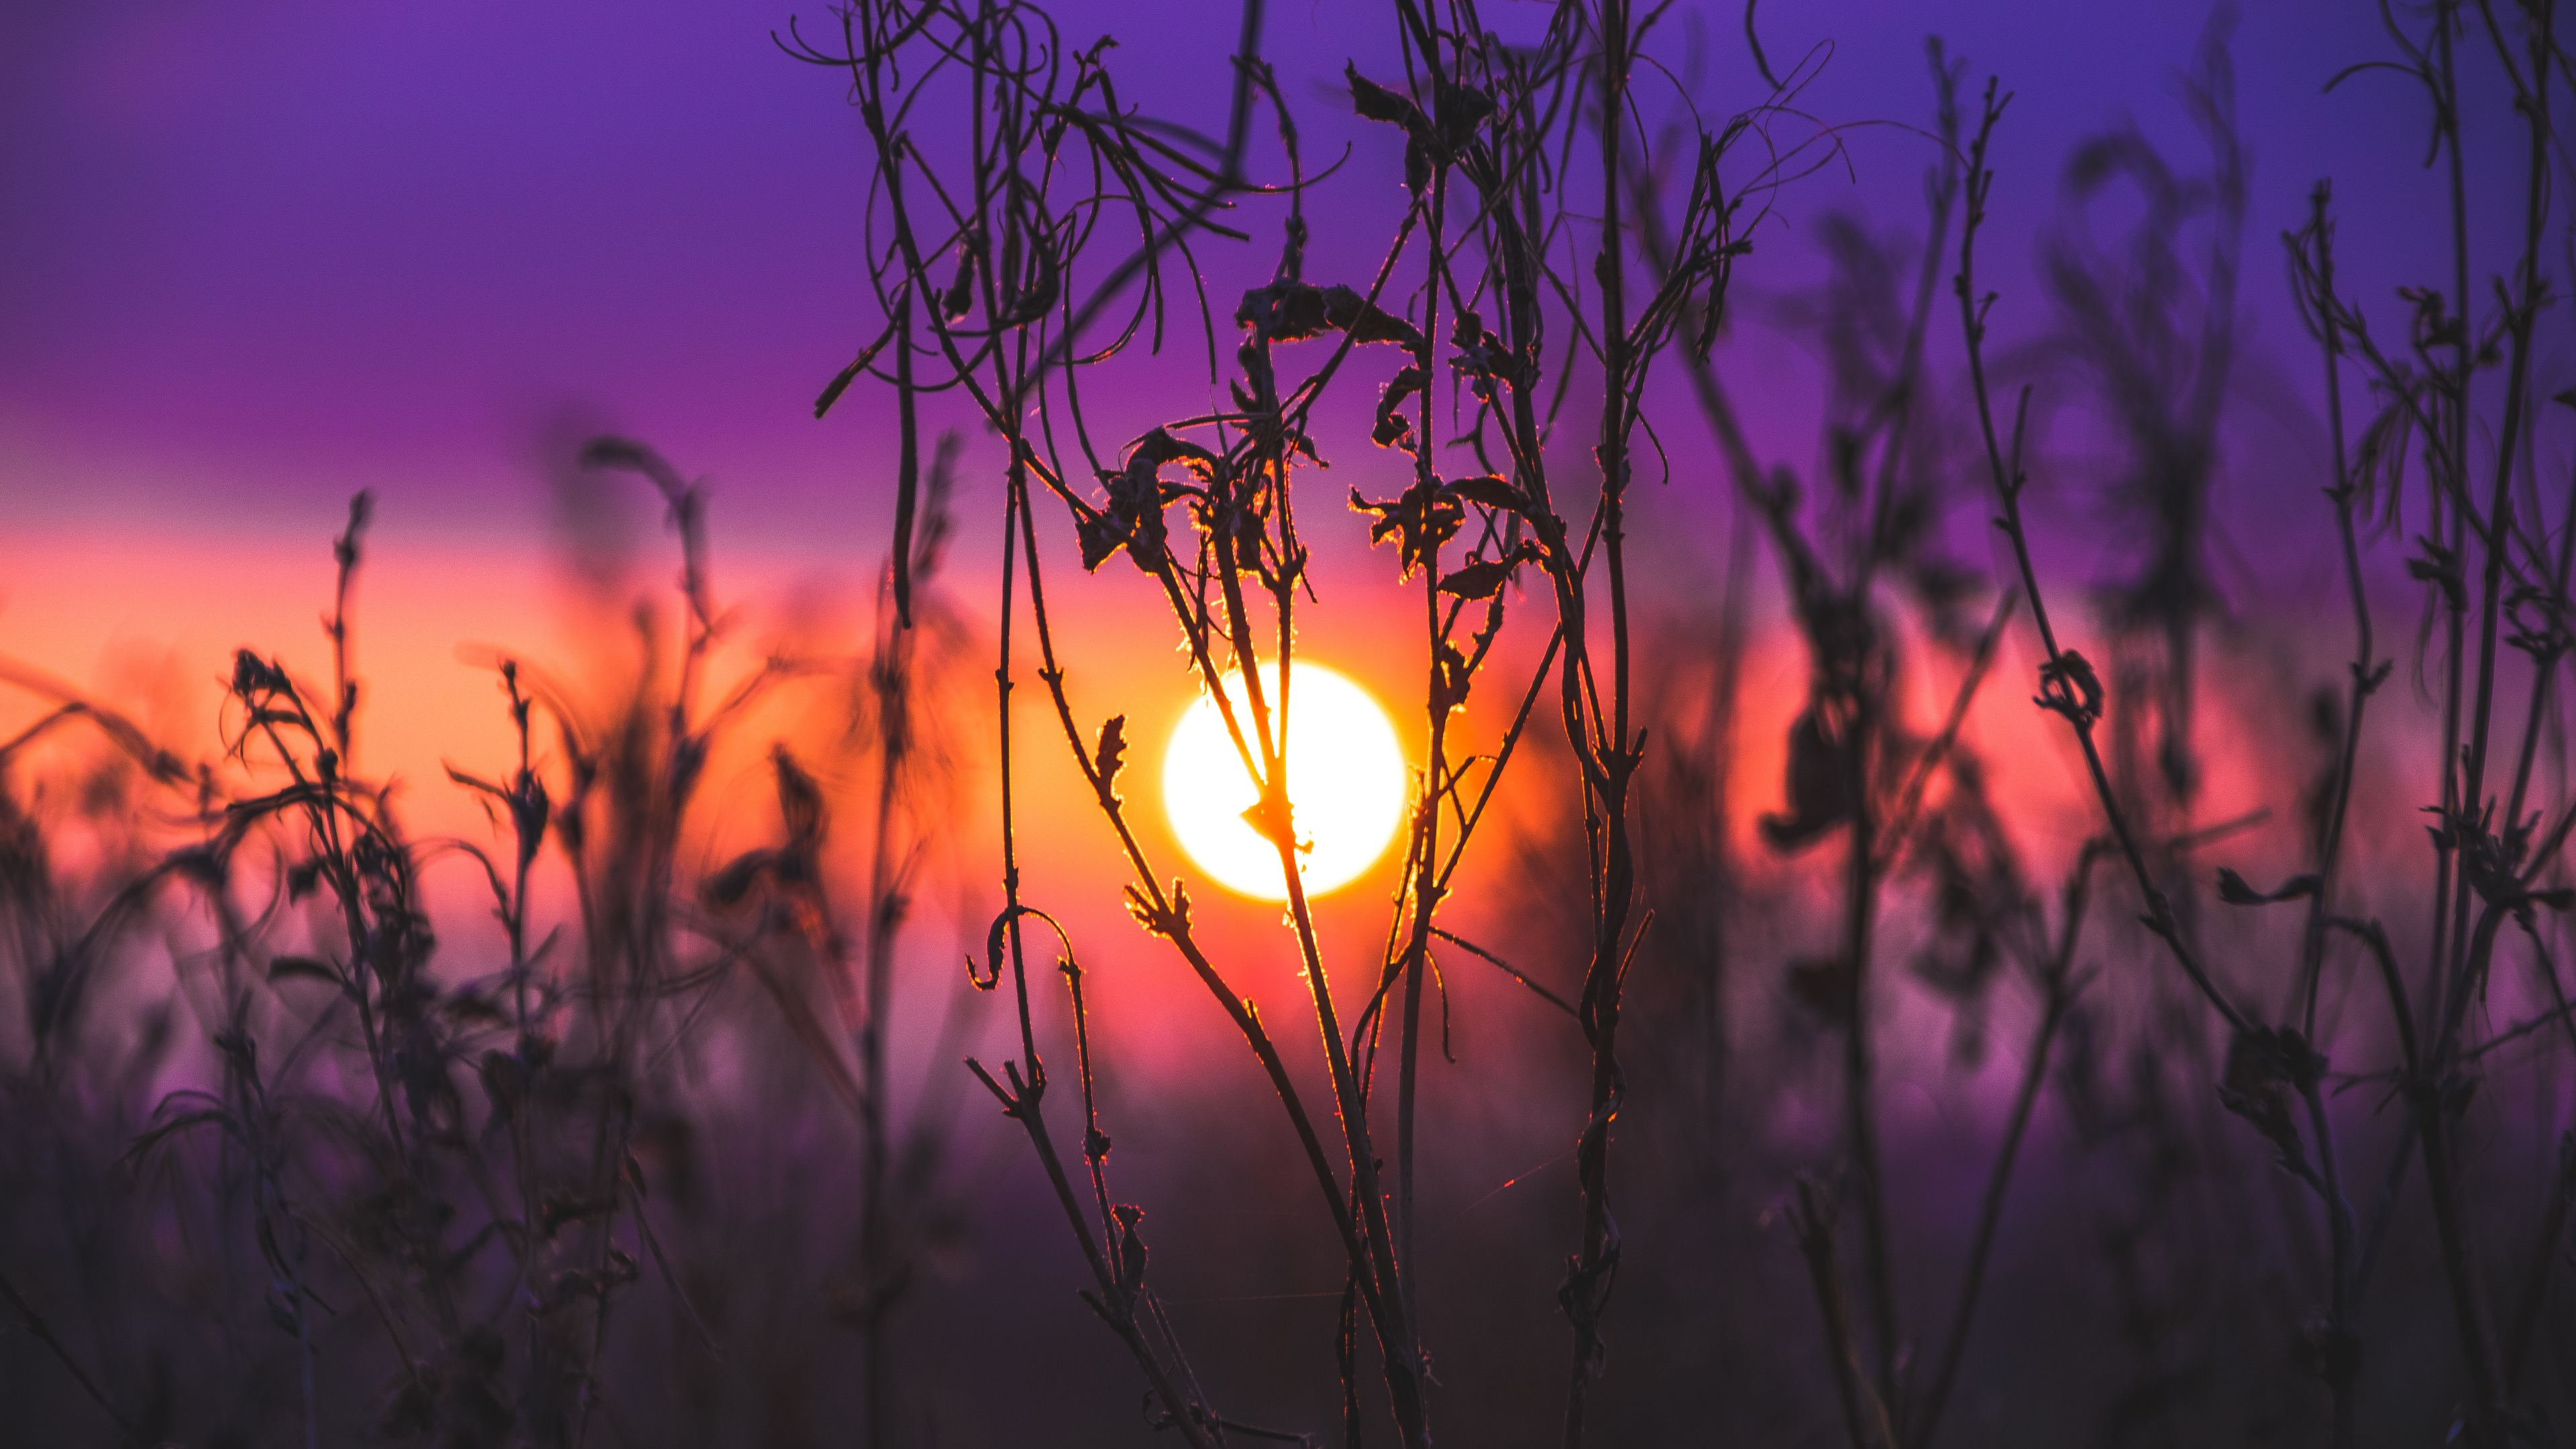 morning glow grass field 1551643340 - Morning Glow Grass Field - sunset wallpapers, sunrise wallpapers, nature wallpapers, hd-wallpapers, grass wallpapers, field wallpapers, 4k-wallpapers